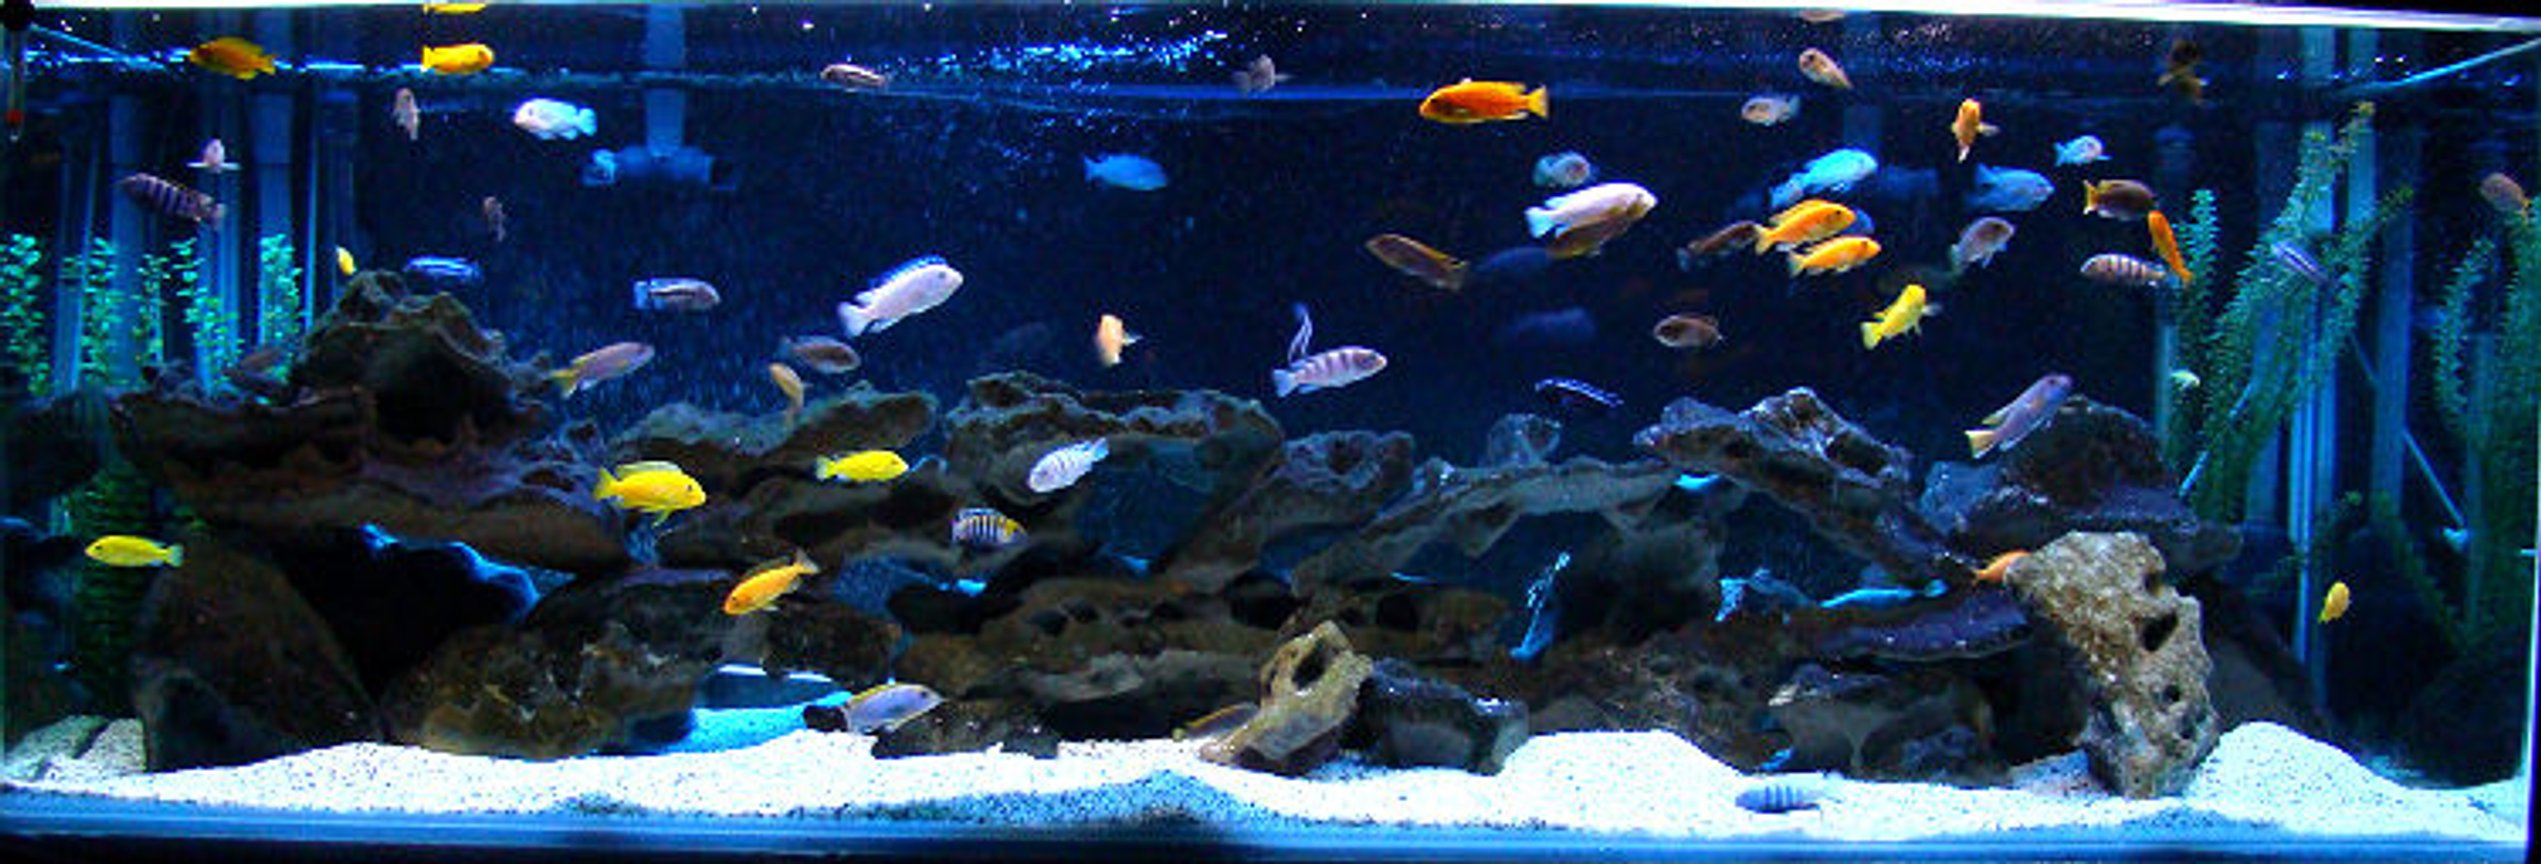 180 gallons freshwater fish tank (mostly fish and non-living decorations) - 180g Mbuna Aquarium